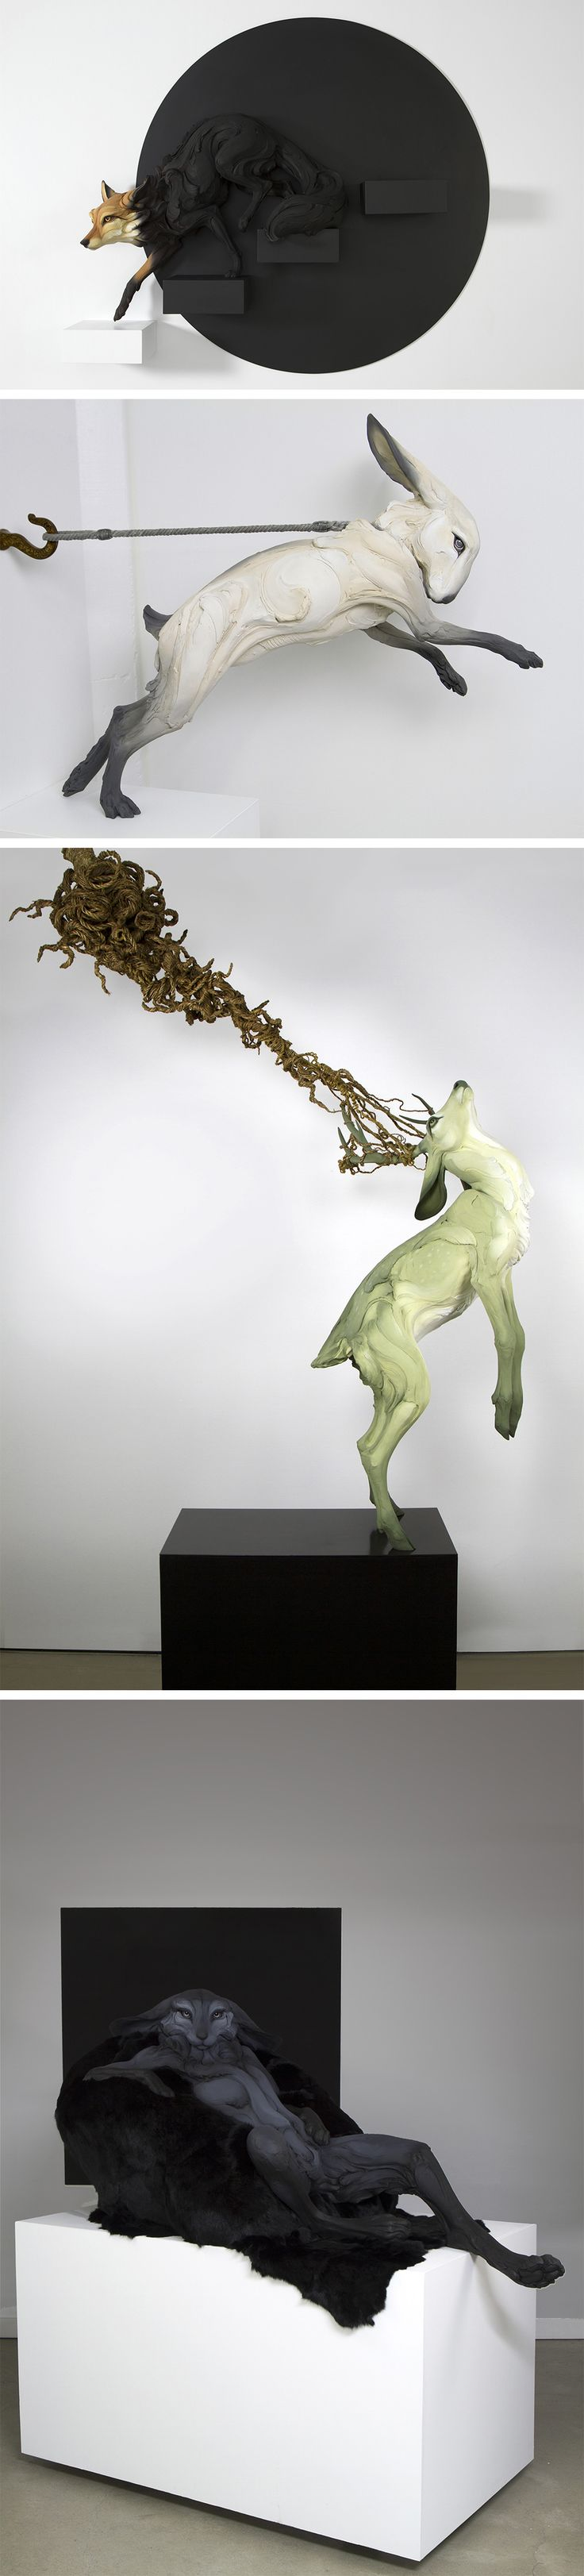 New Stoneware Animals Fraught With Human Emotion by Beth Cavener